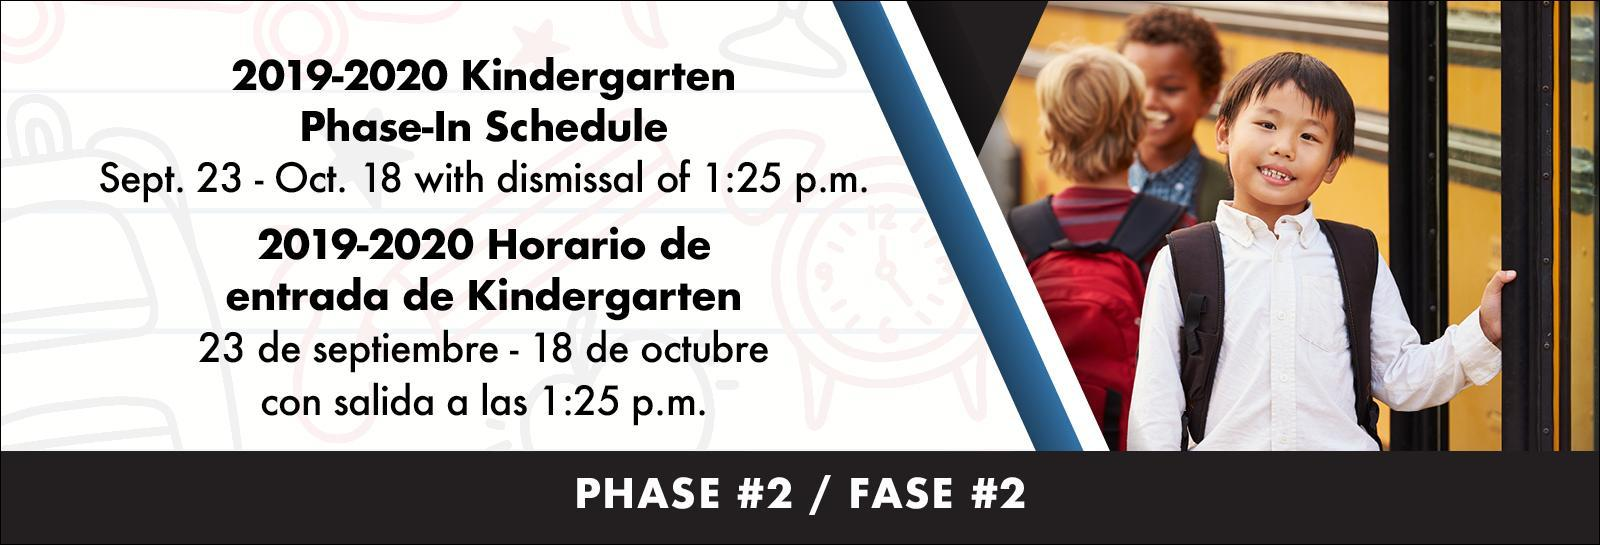 2019-2020 Kindergarten Phase-In Schedule